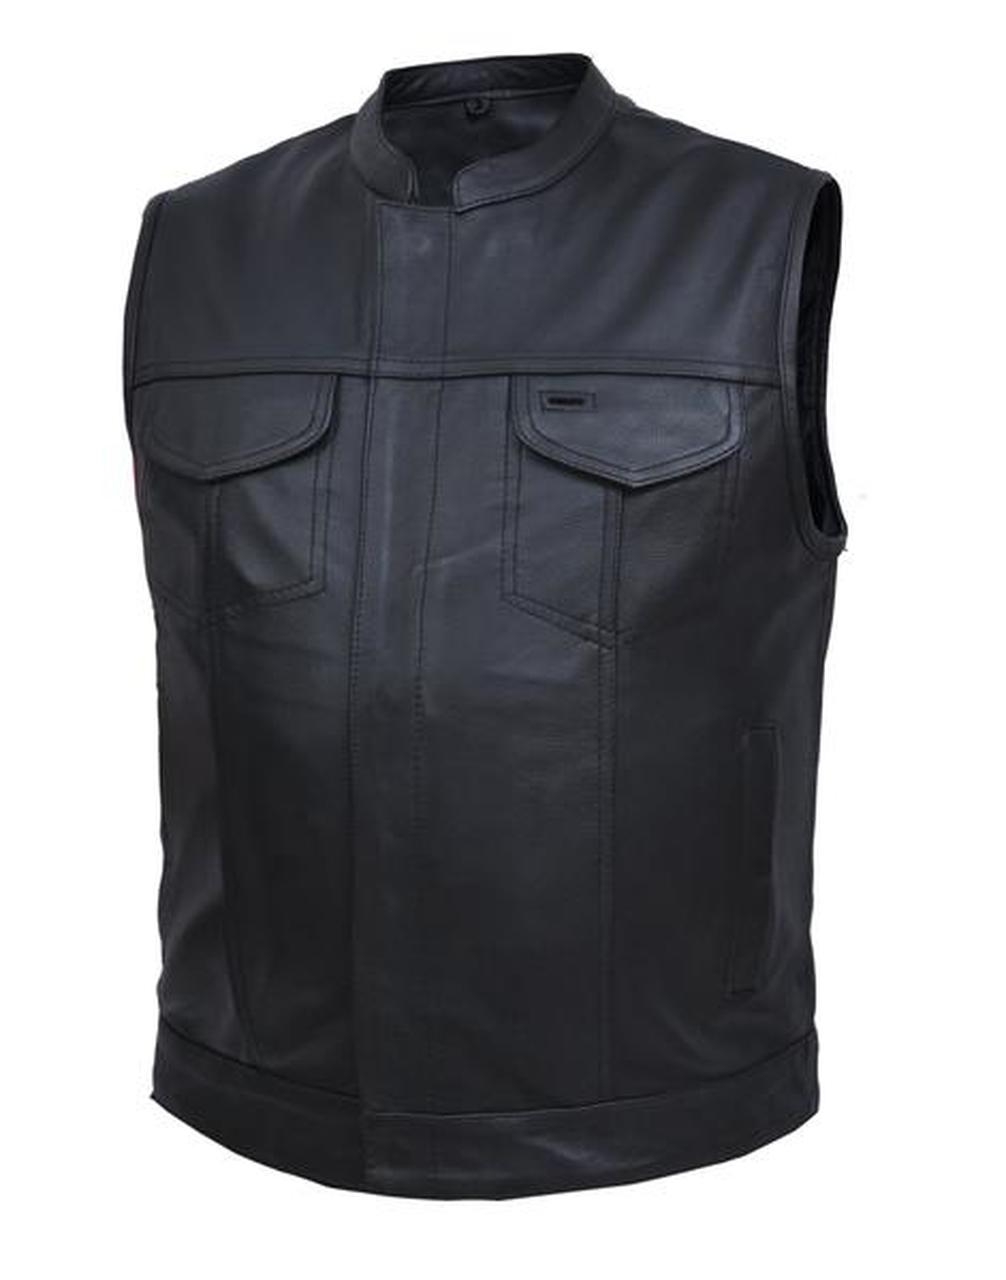 Men's Front Zipper & Snap Closure Leather Motorcycle Club Vest 6665.00